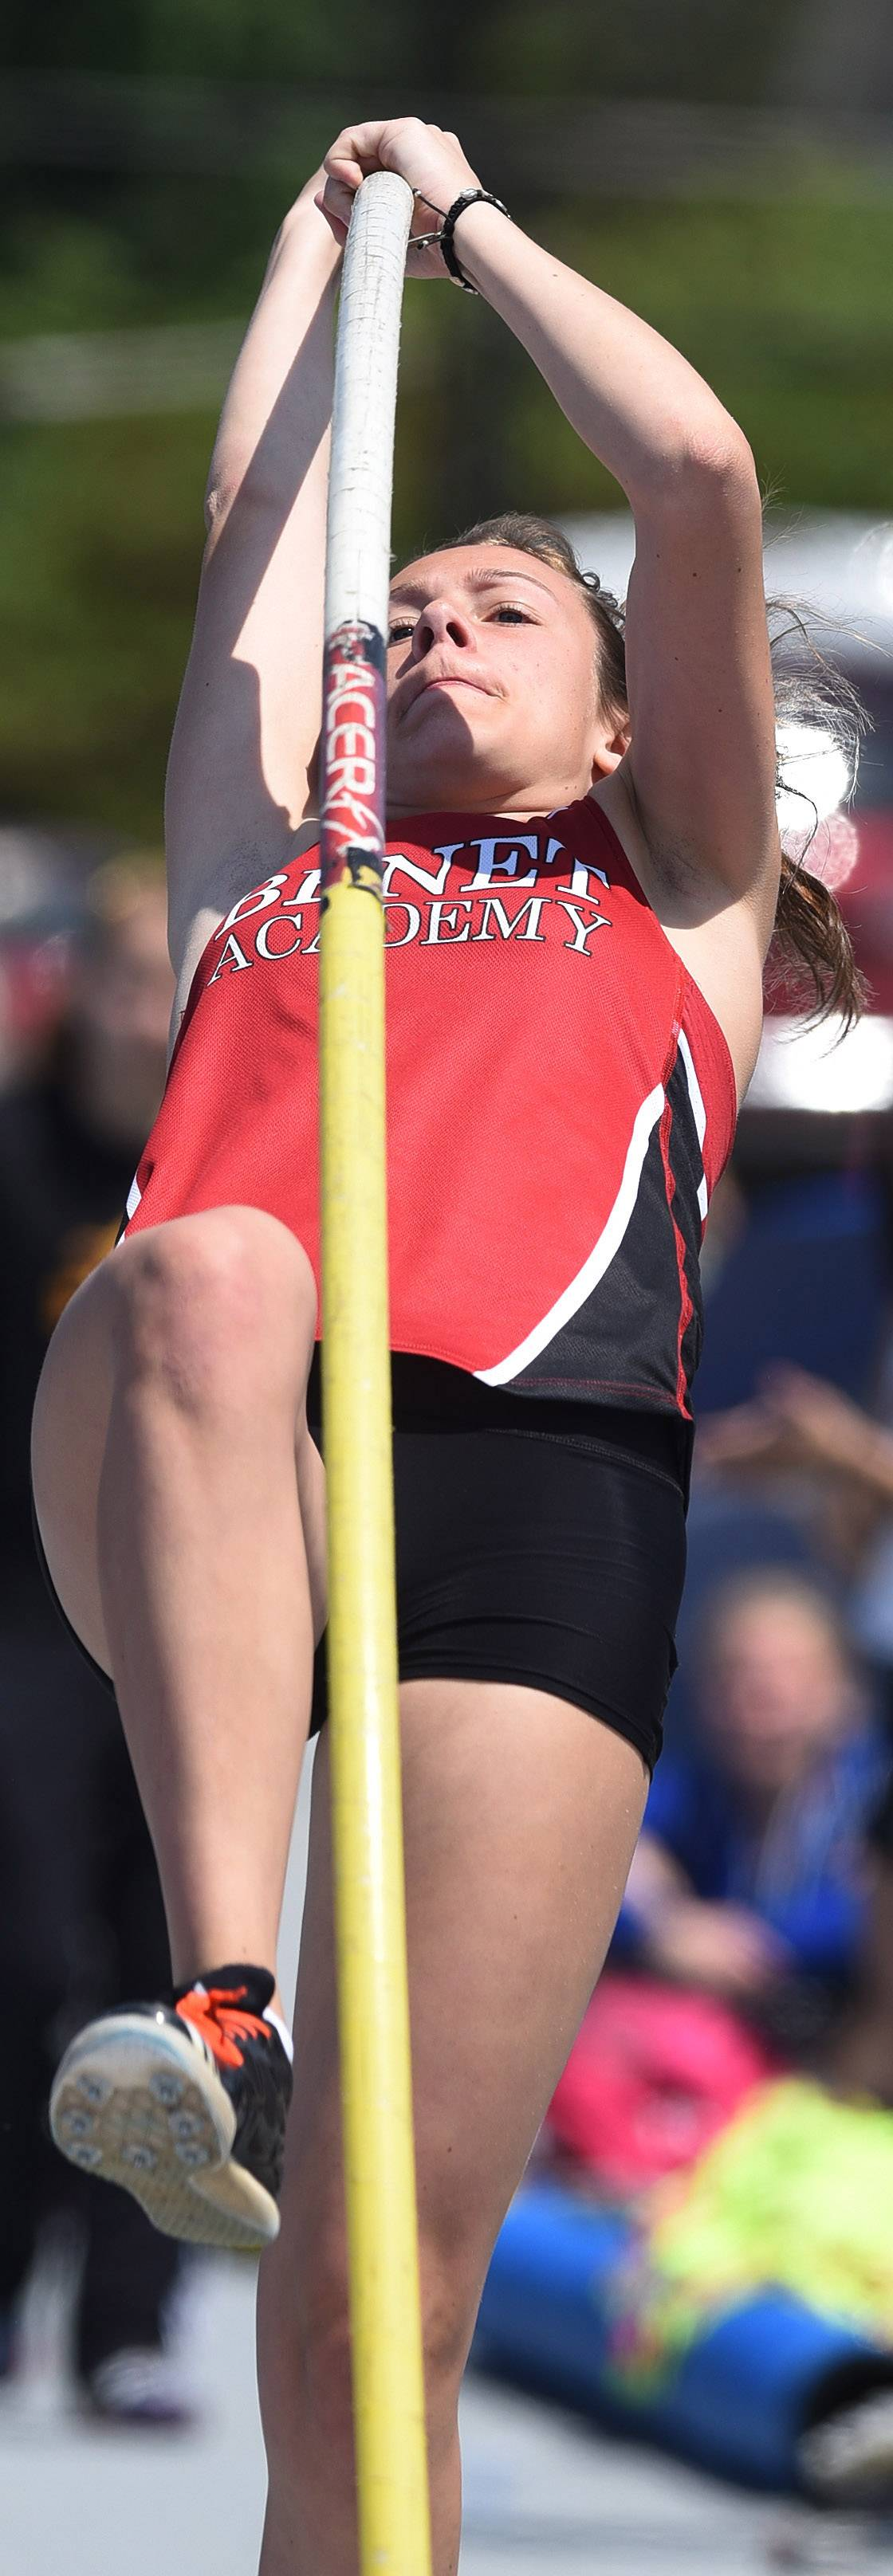 Ali Munson of Benet Academy pole vaults toward a class 2A state title during the IHSA girls state track finals in Charleston Saturday